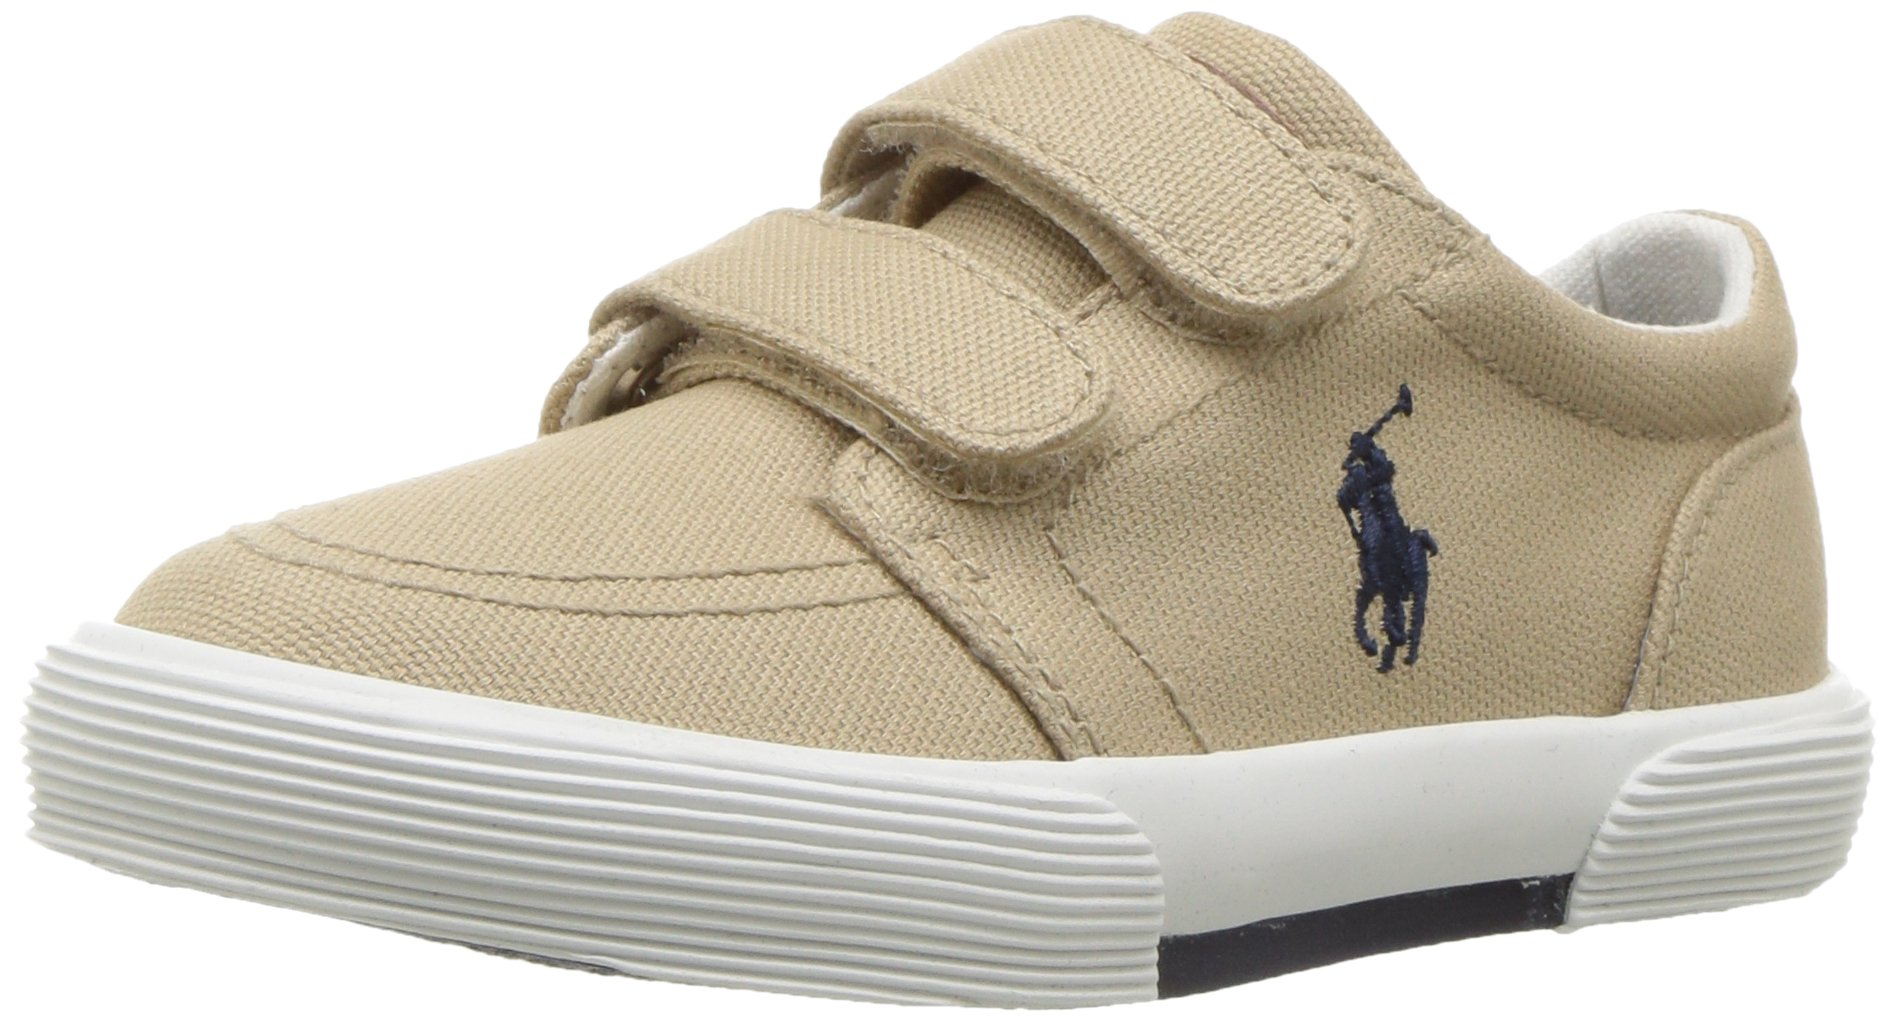 Polo Ralph Lauren Kids Boys' Faxon II Sneaker, Khaki Cotton, 10 M US Toddler